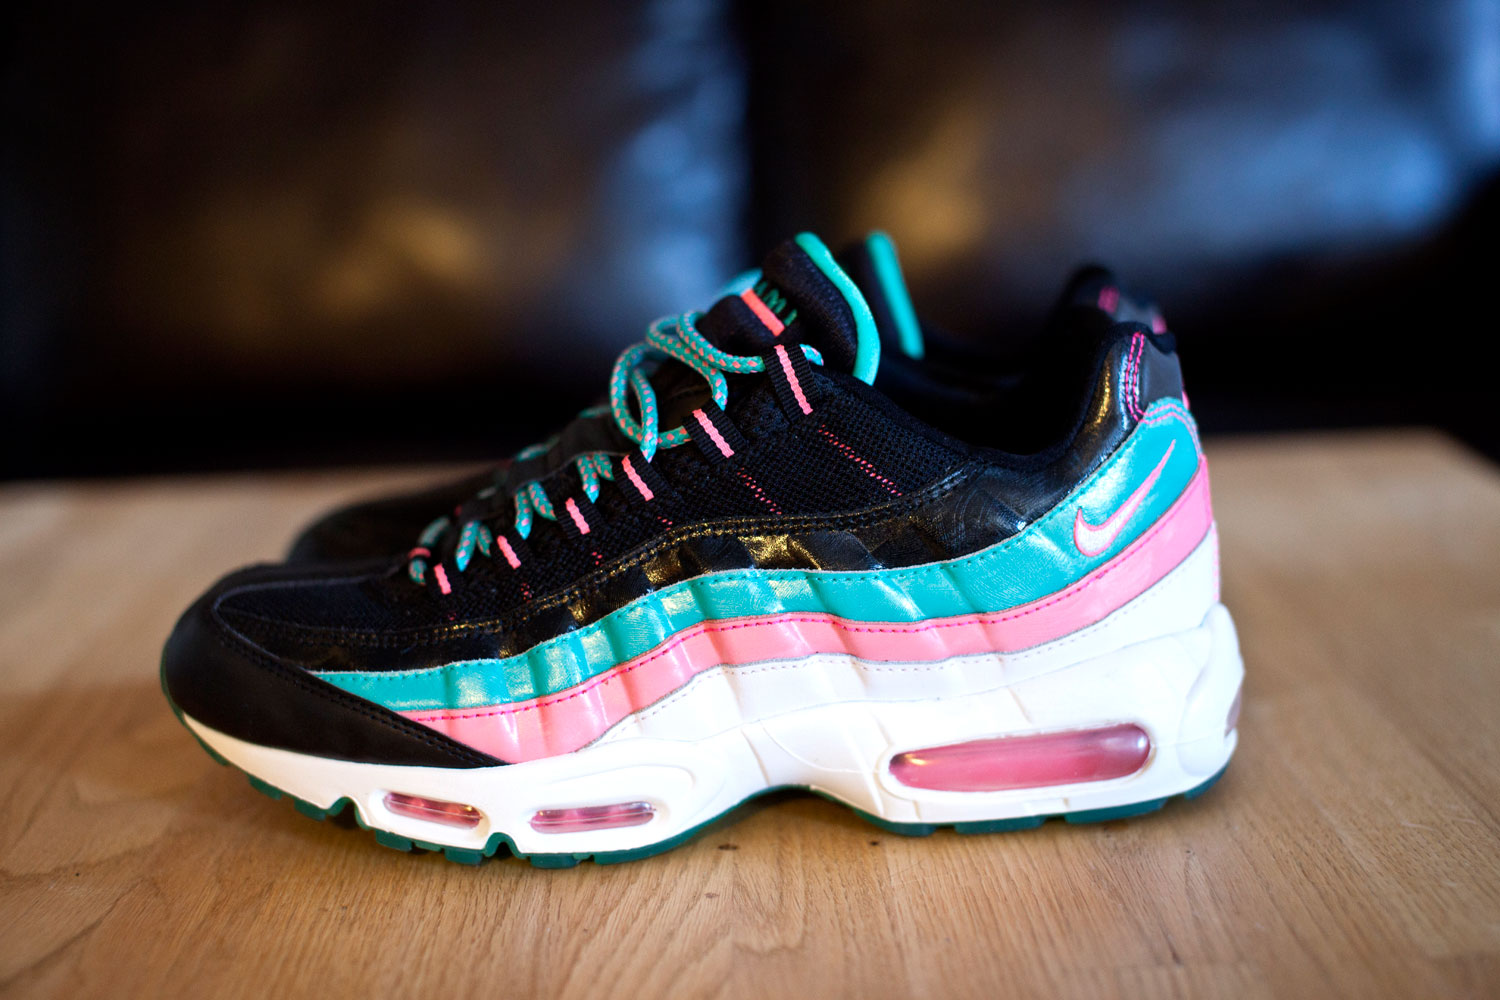 finest selection 61c8d 37bcc miami vice air max 95 for sale